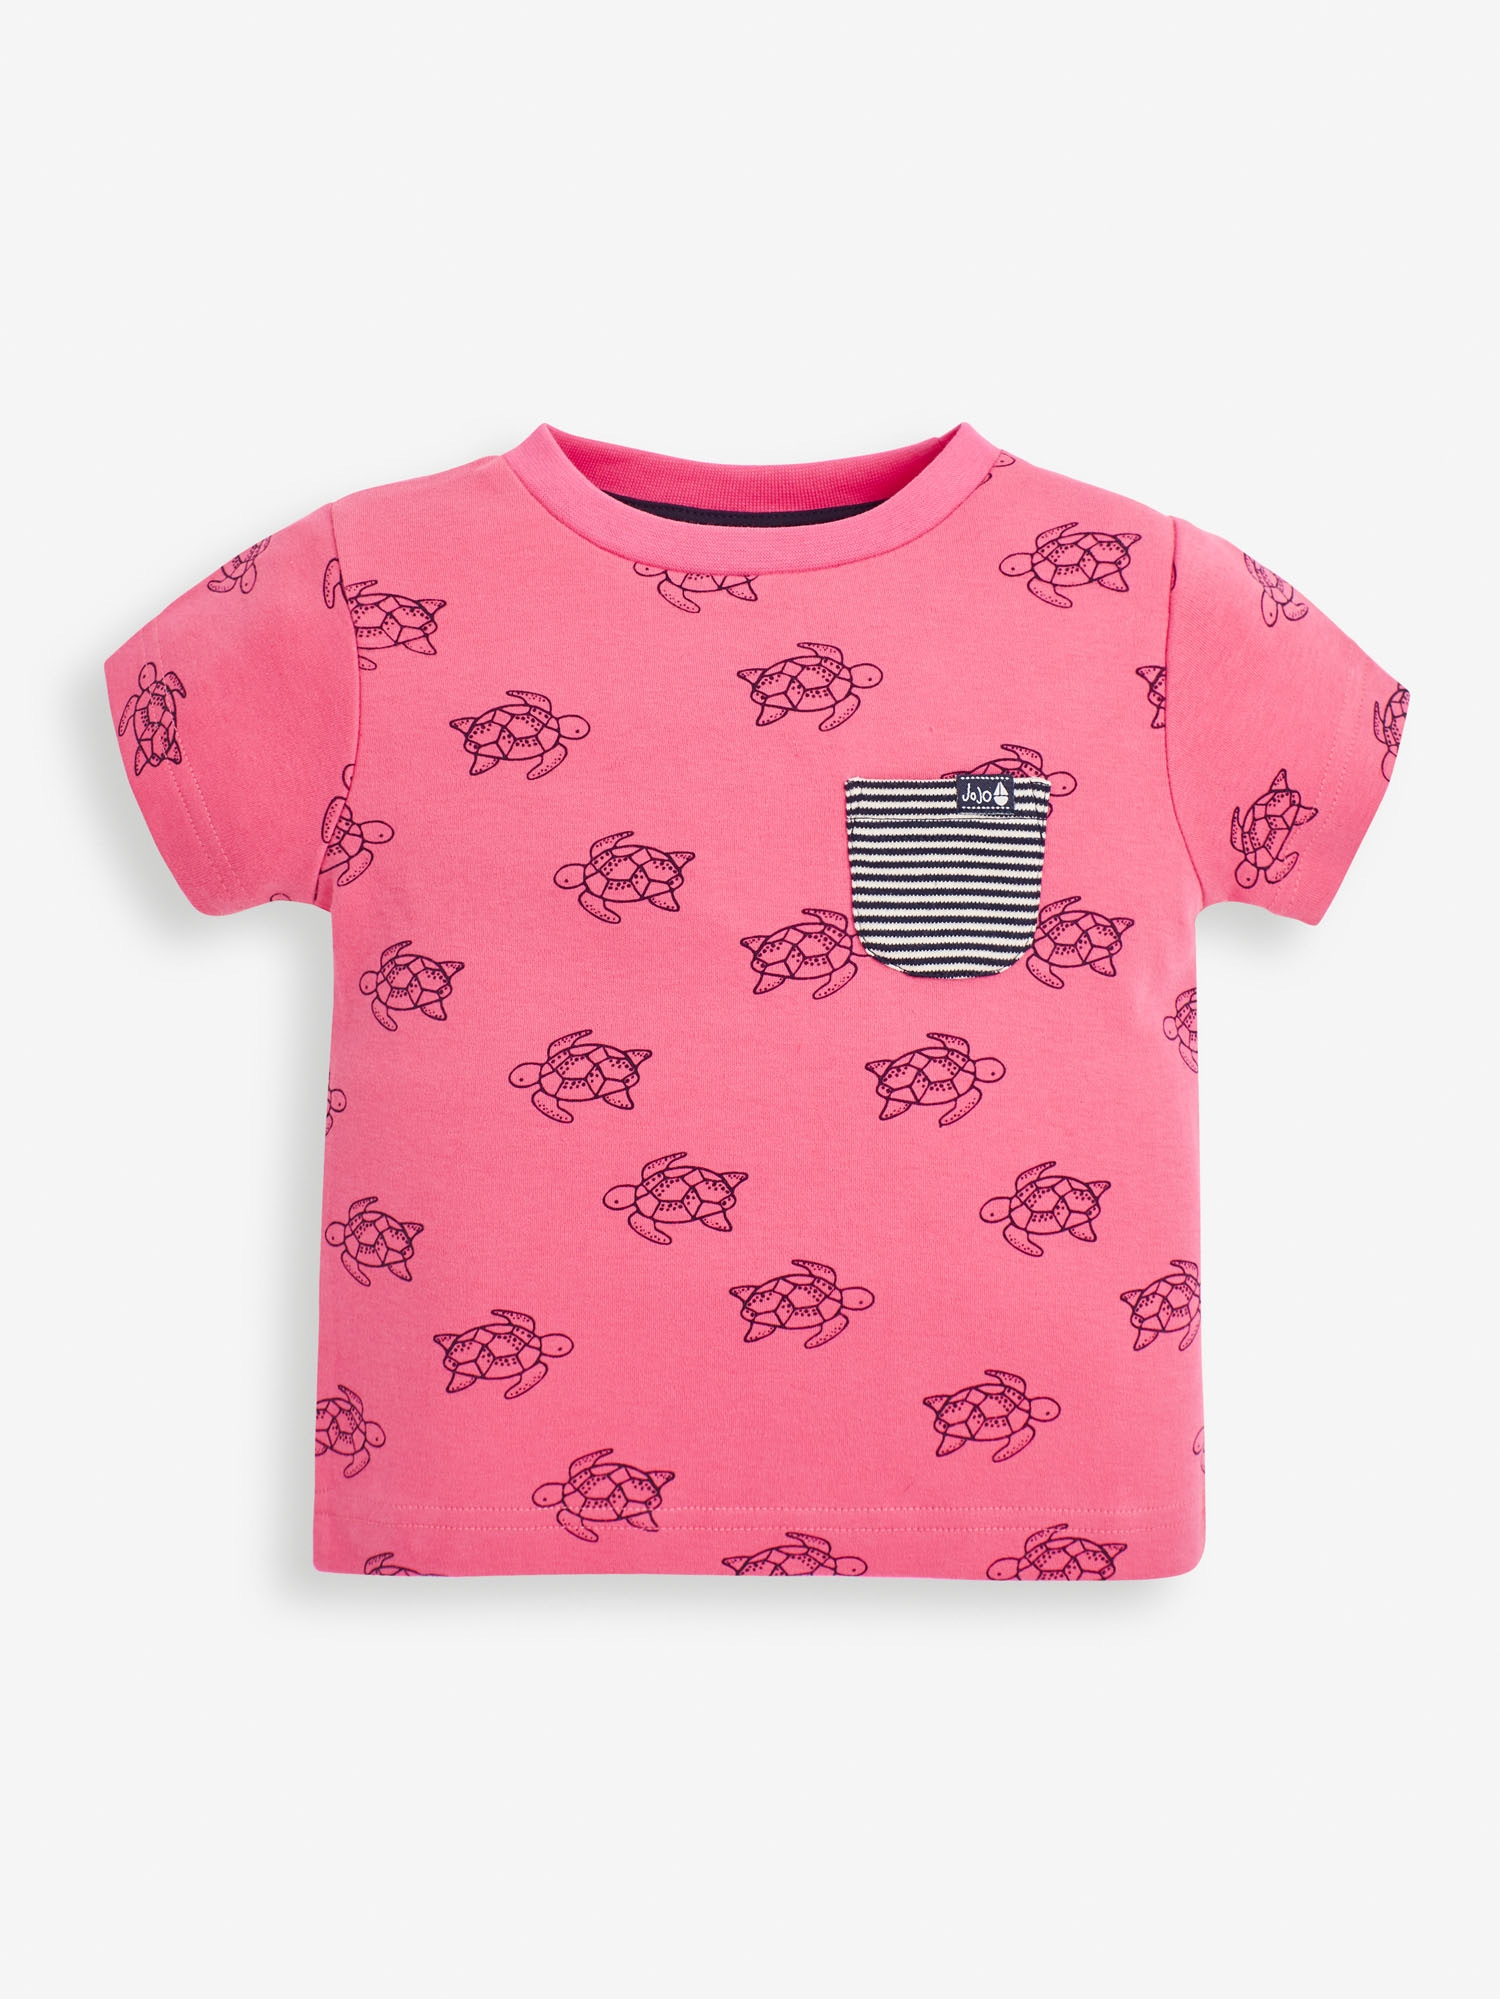 Kids' Pink Turtle Print T-Shirt